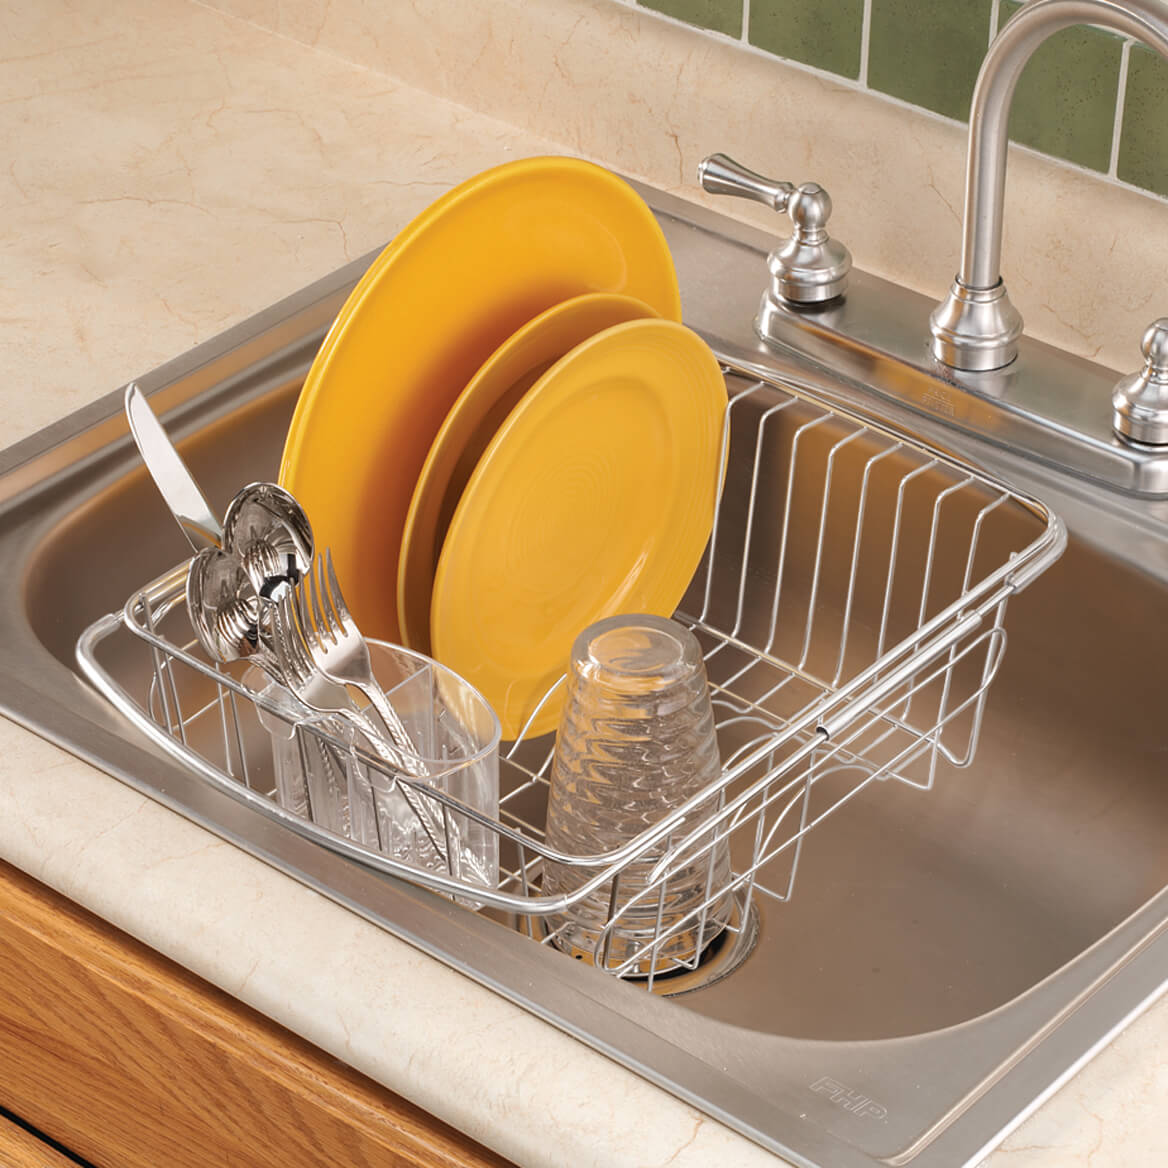 Over-the-Sink Dish Rack Chef's Pride-305089